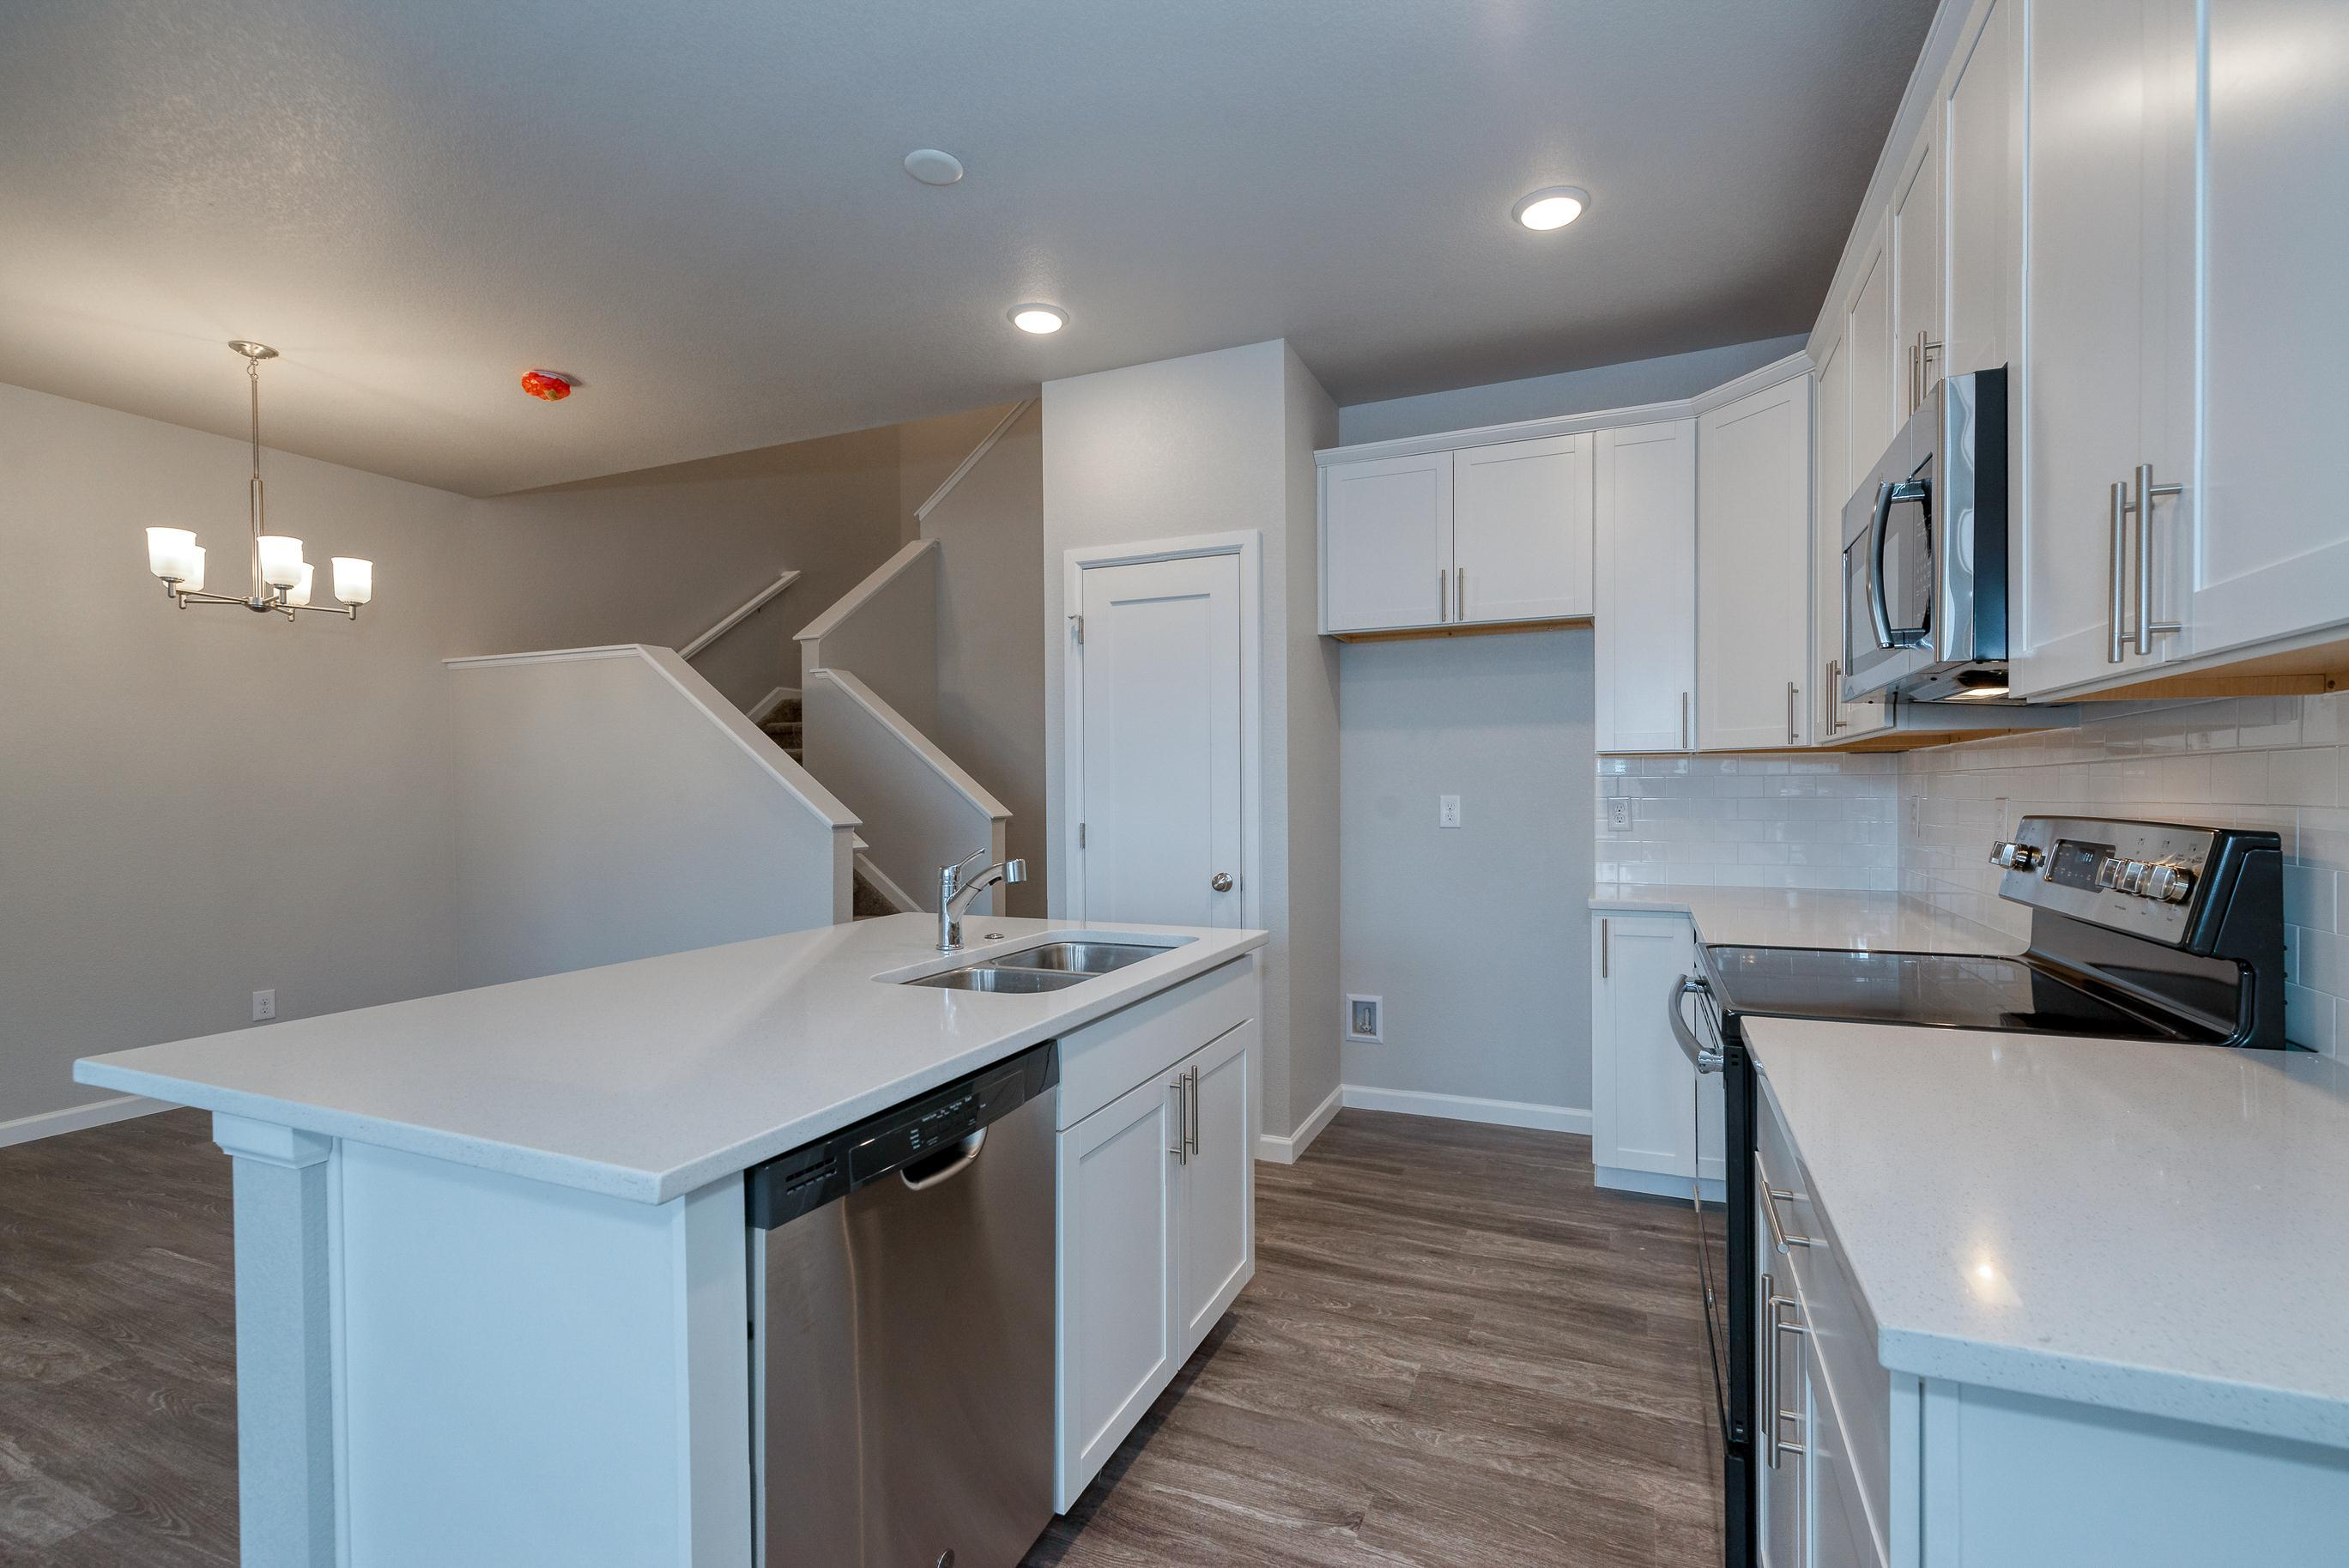 Kitchen featured in The Irondale By JM Weston Homes in Denver, CO